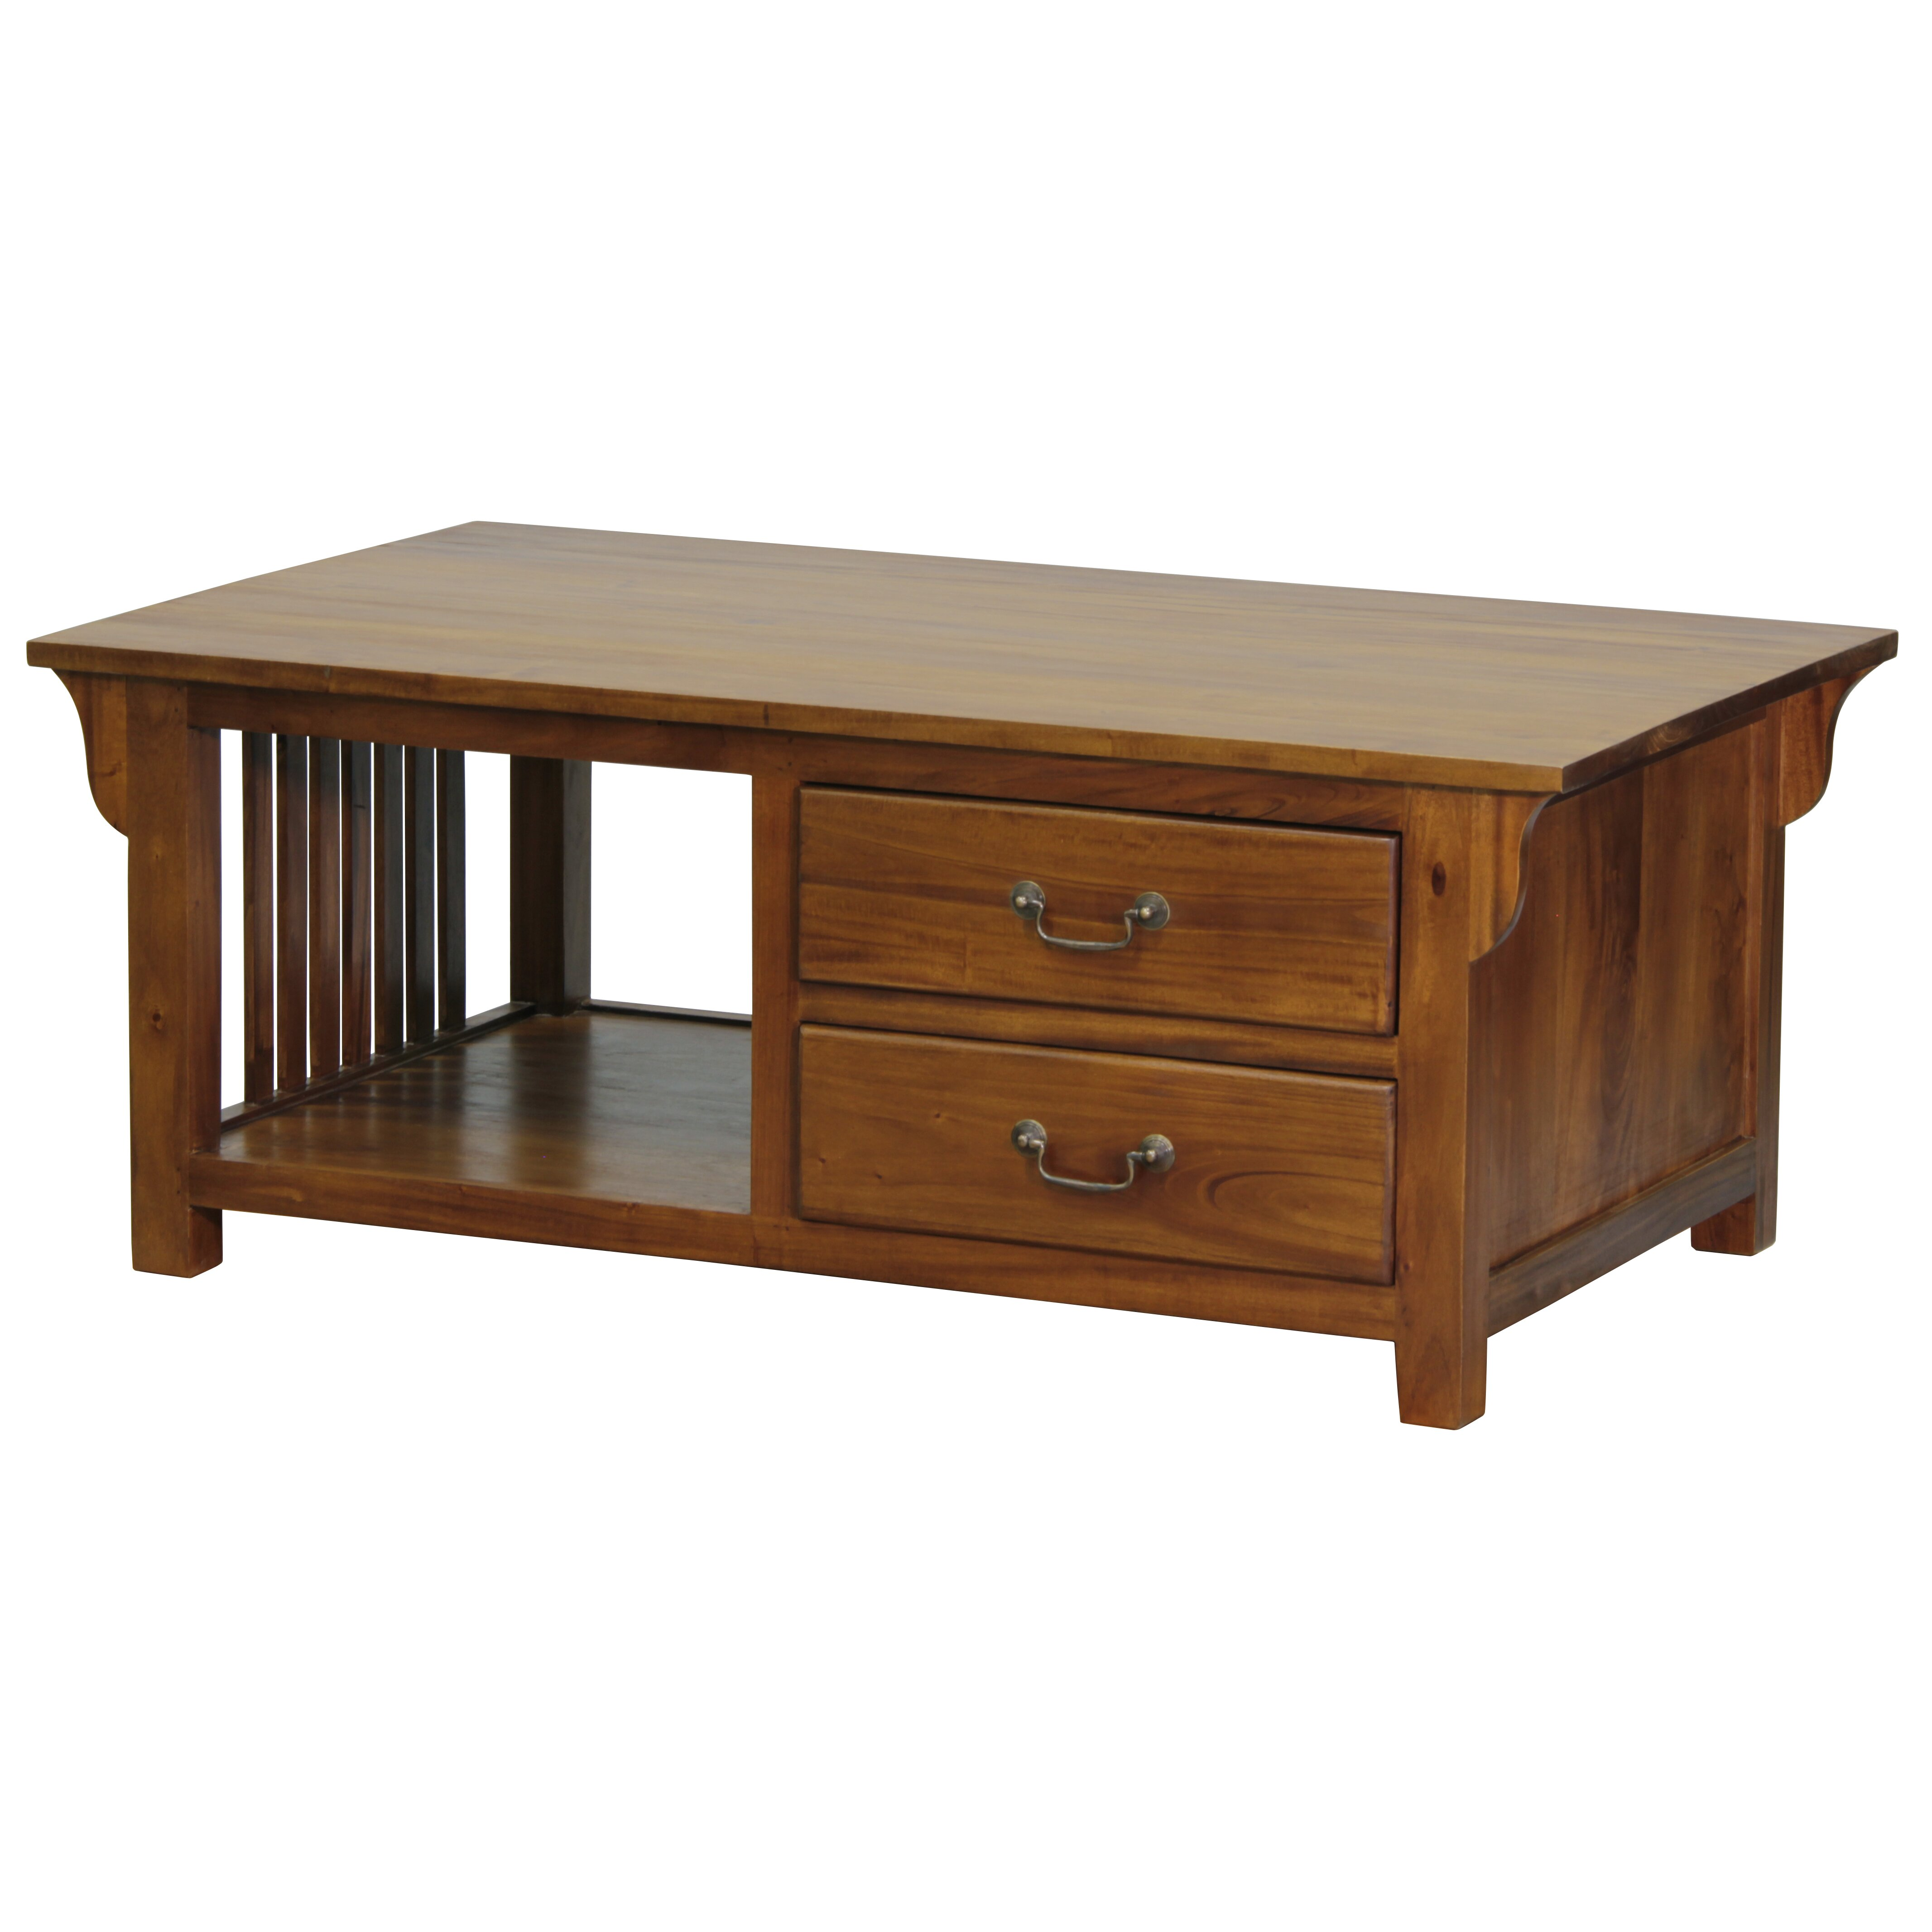 Solid Wood Coffee Table Wayfair: NES Furniture Marseilles Fine Handcrafted Solid Mahogany